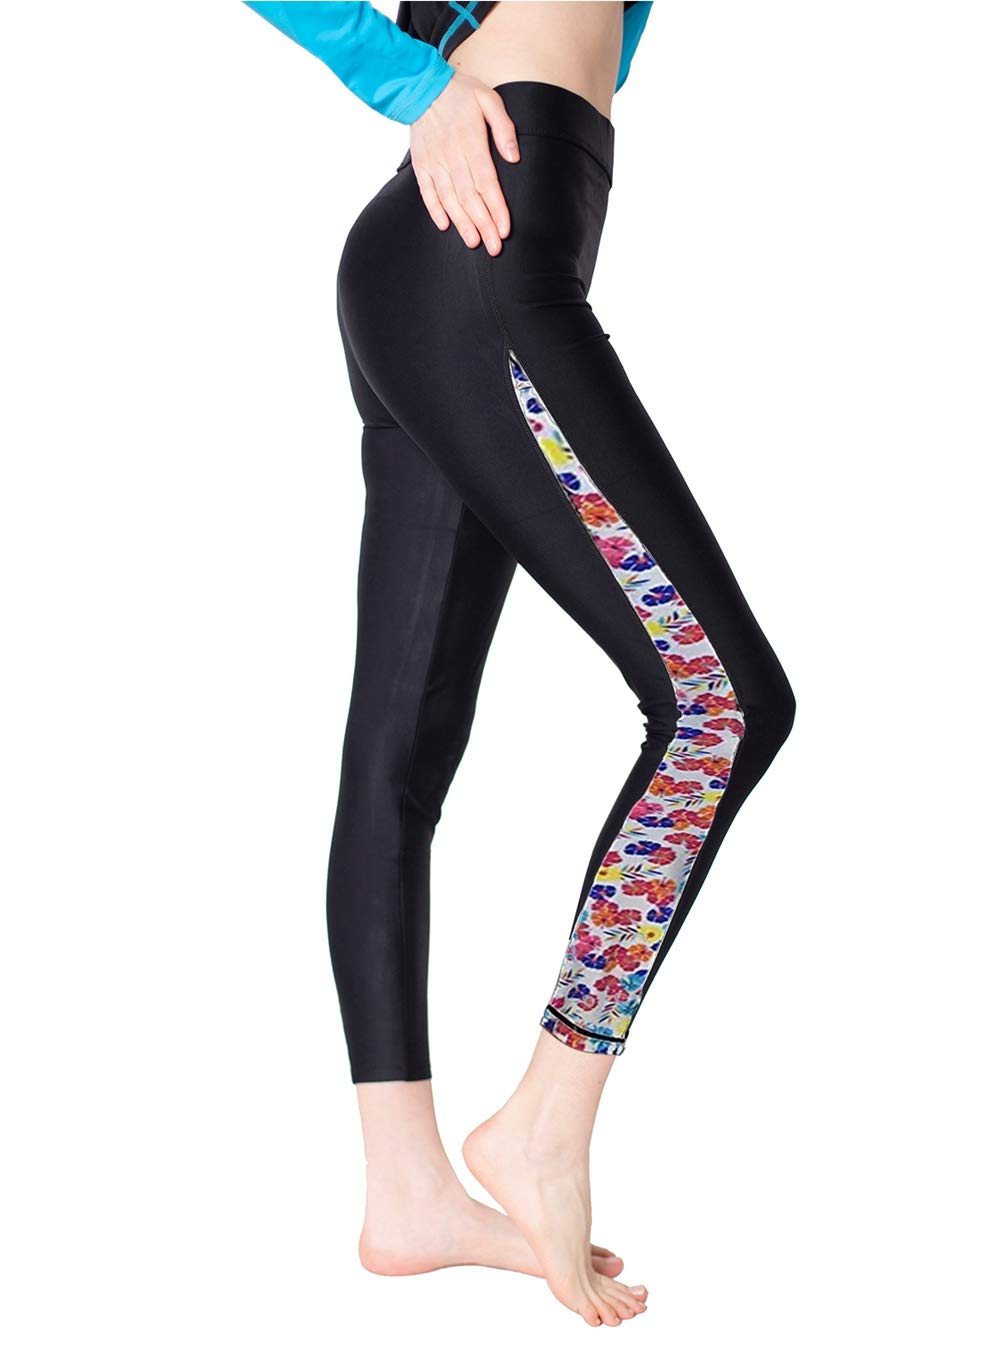 Surfing Leggings Women Swim Tights for Surfing Floral-1 M